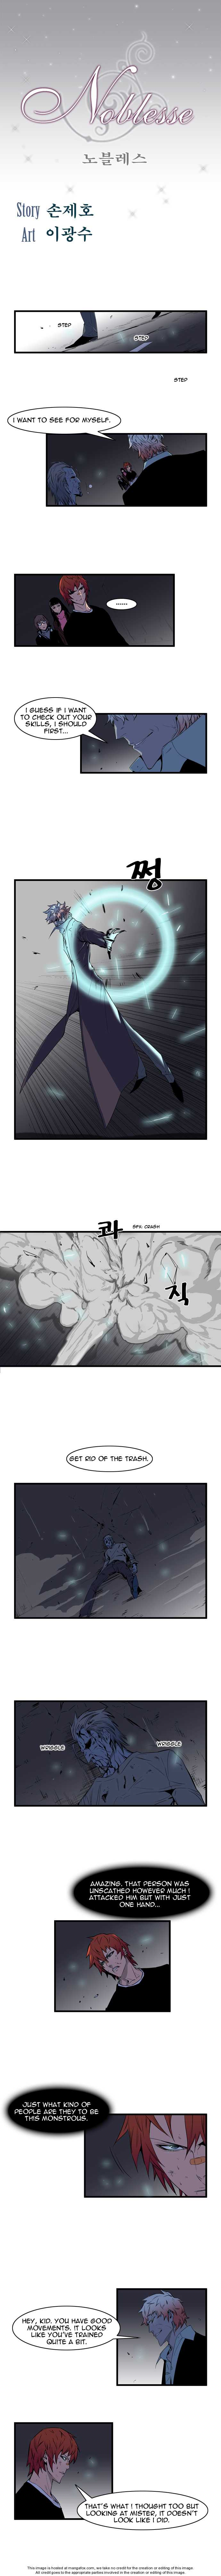 Noblesse 69 Page 1